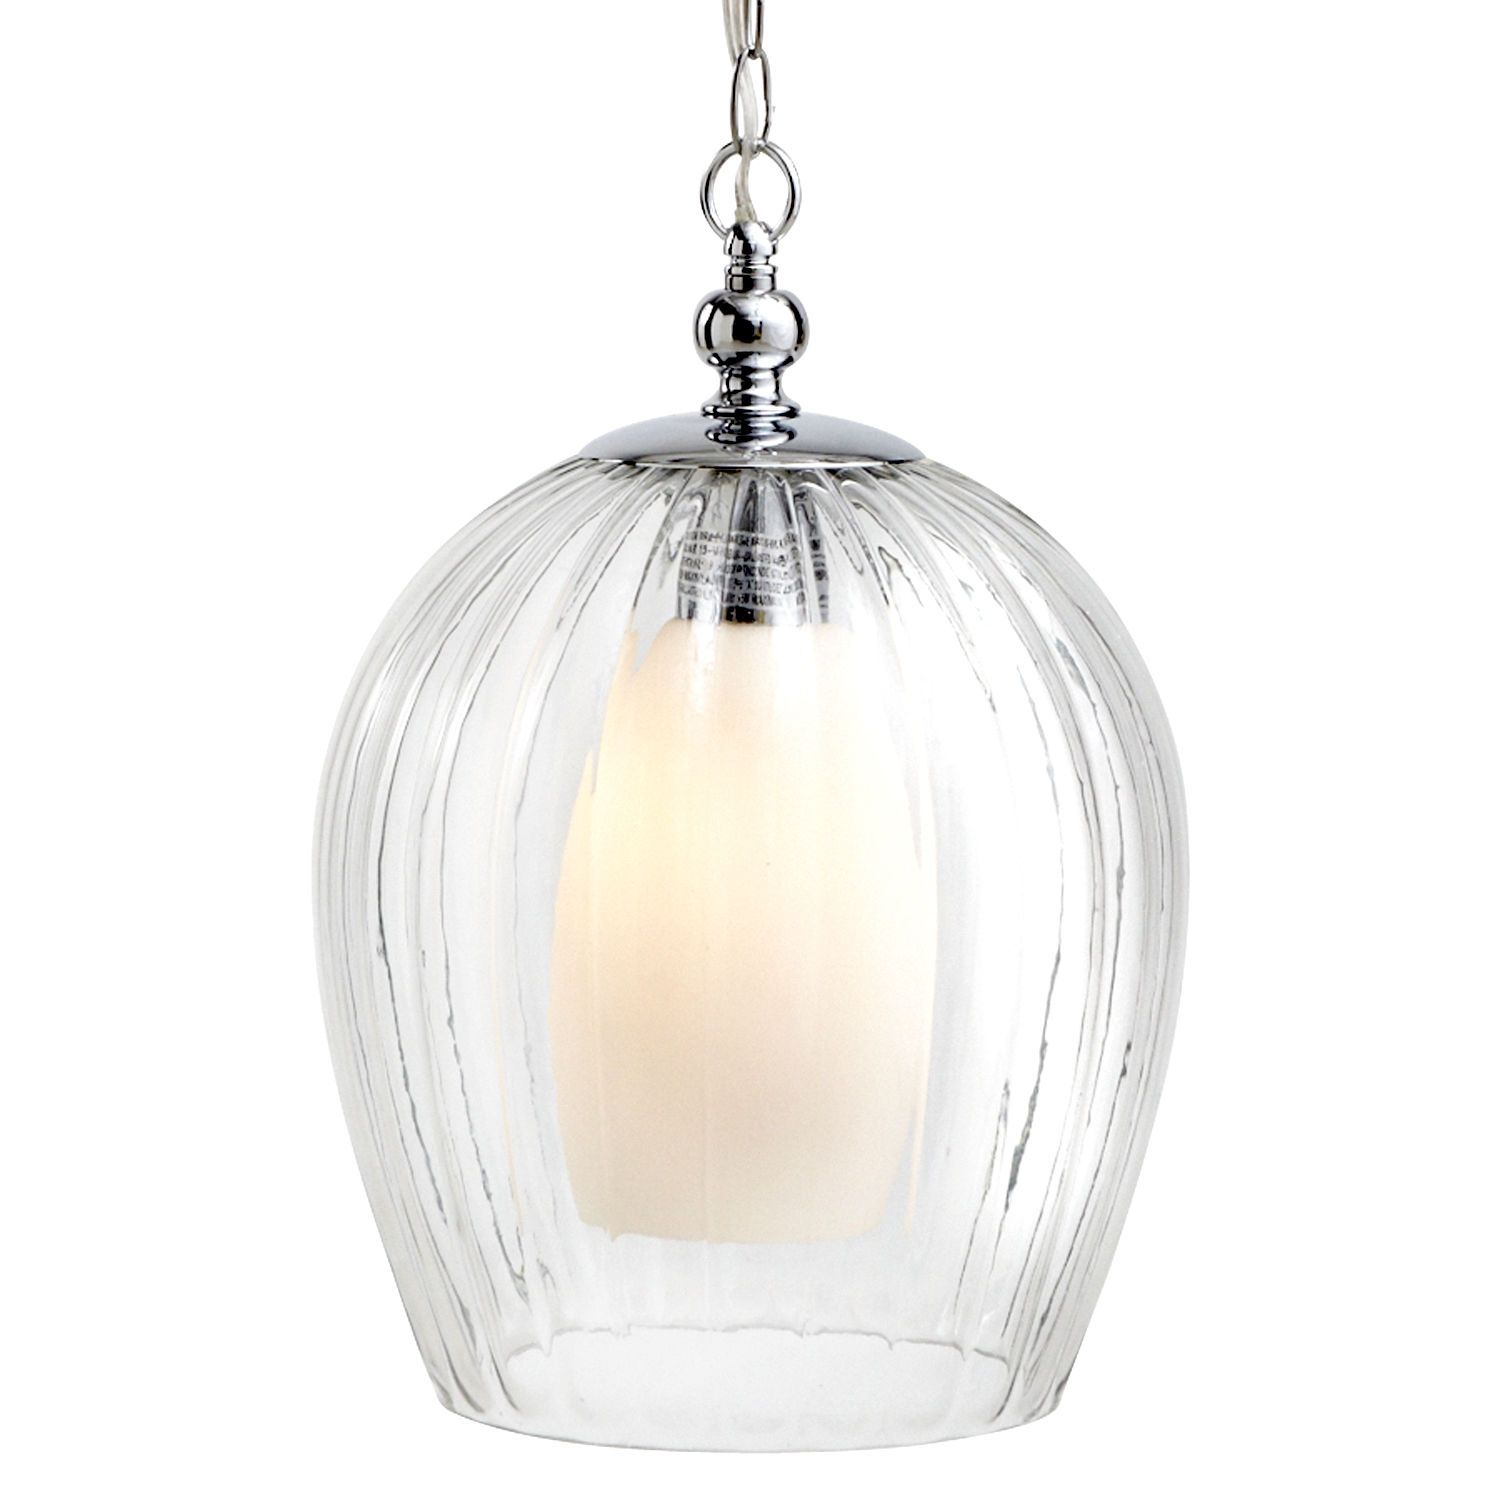 Fluted pendant light clear pier 1 imports